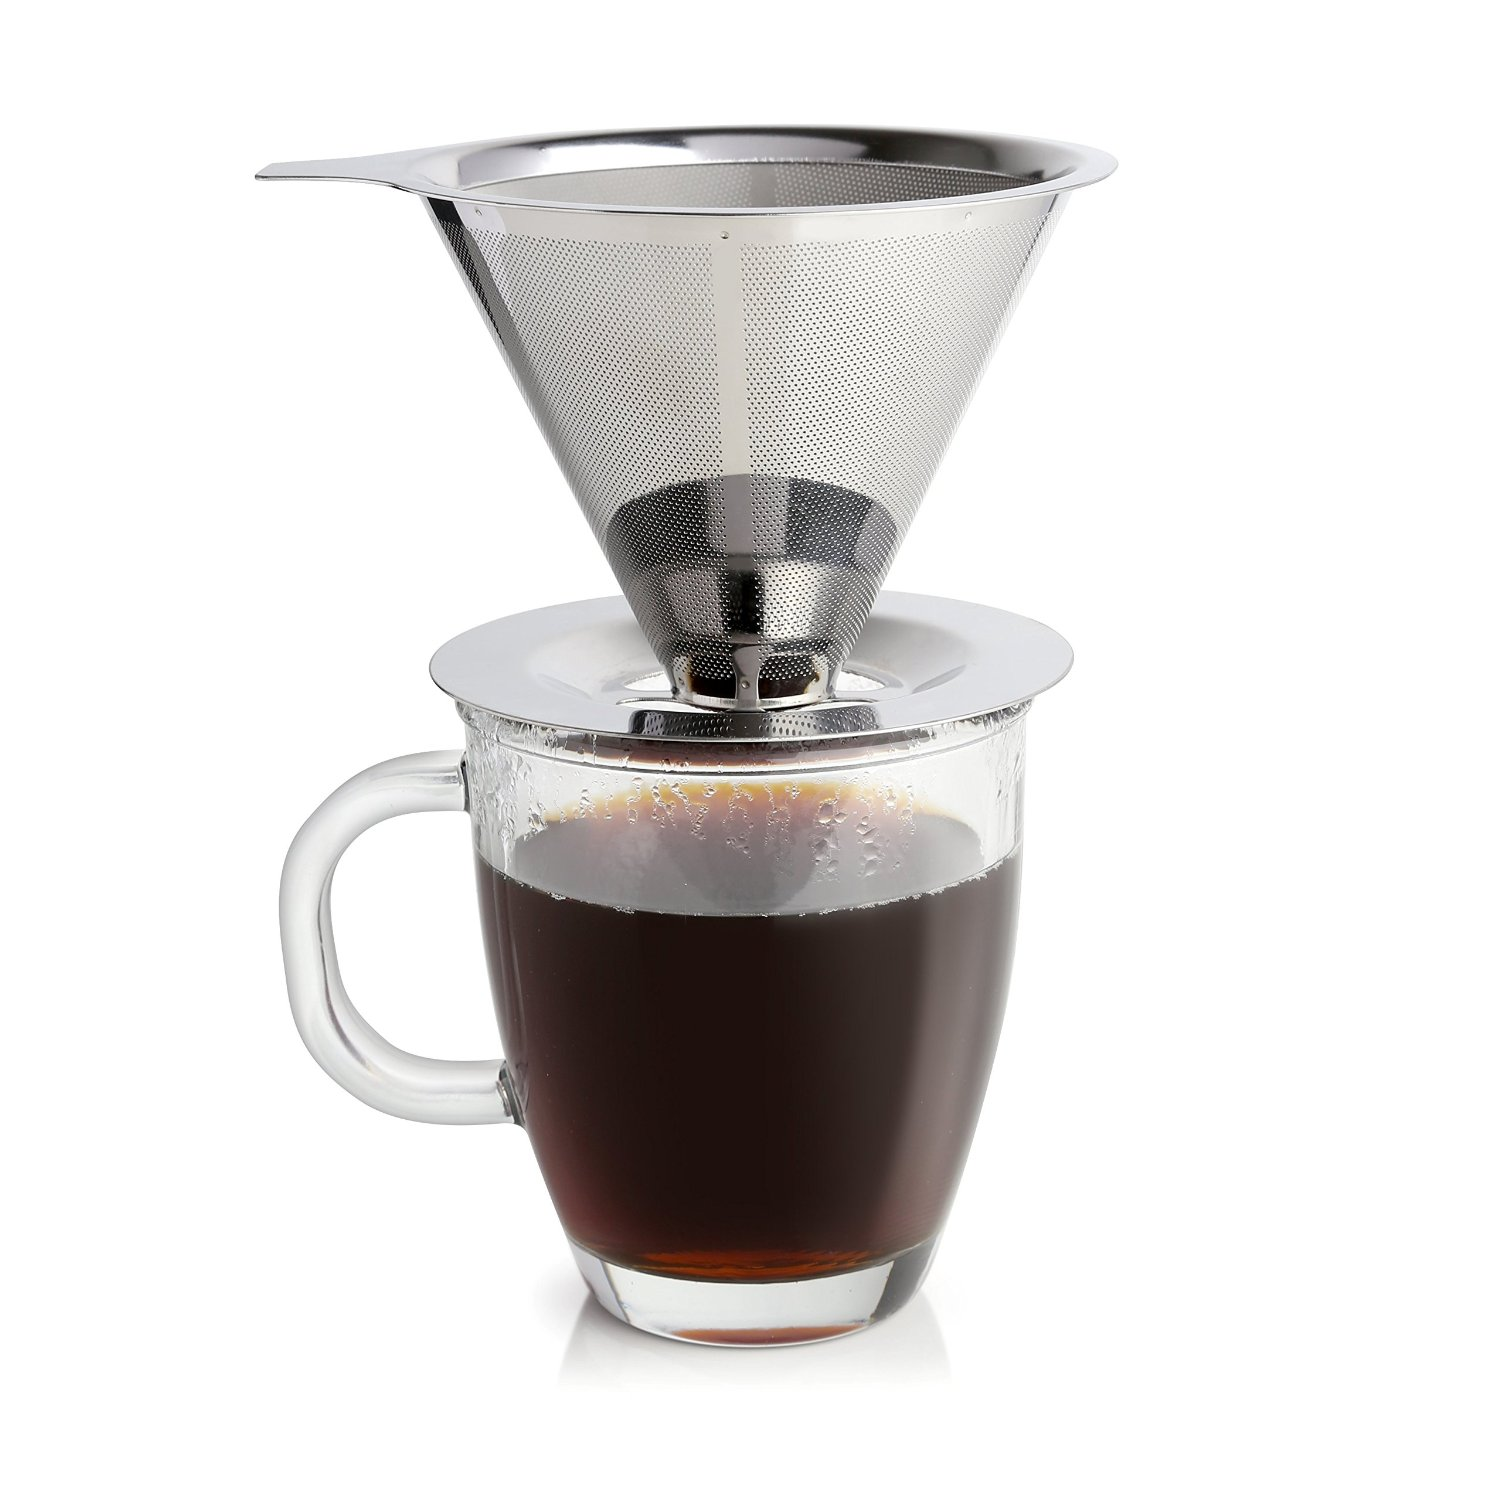 Paperless Coffee Dripper